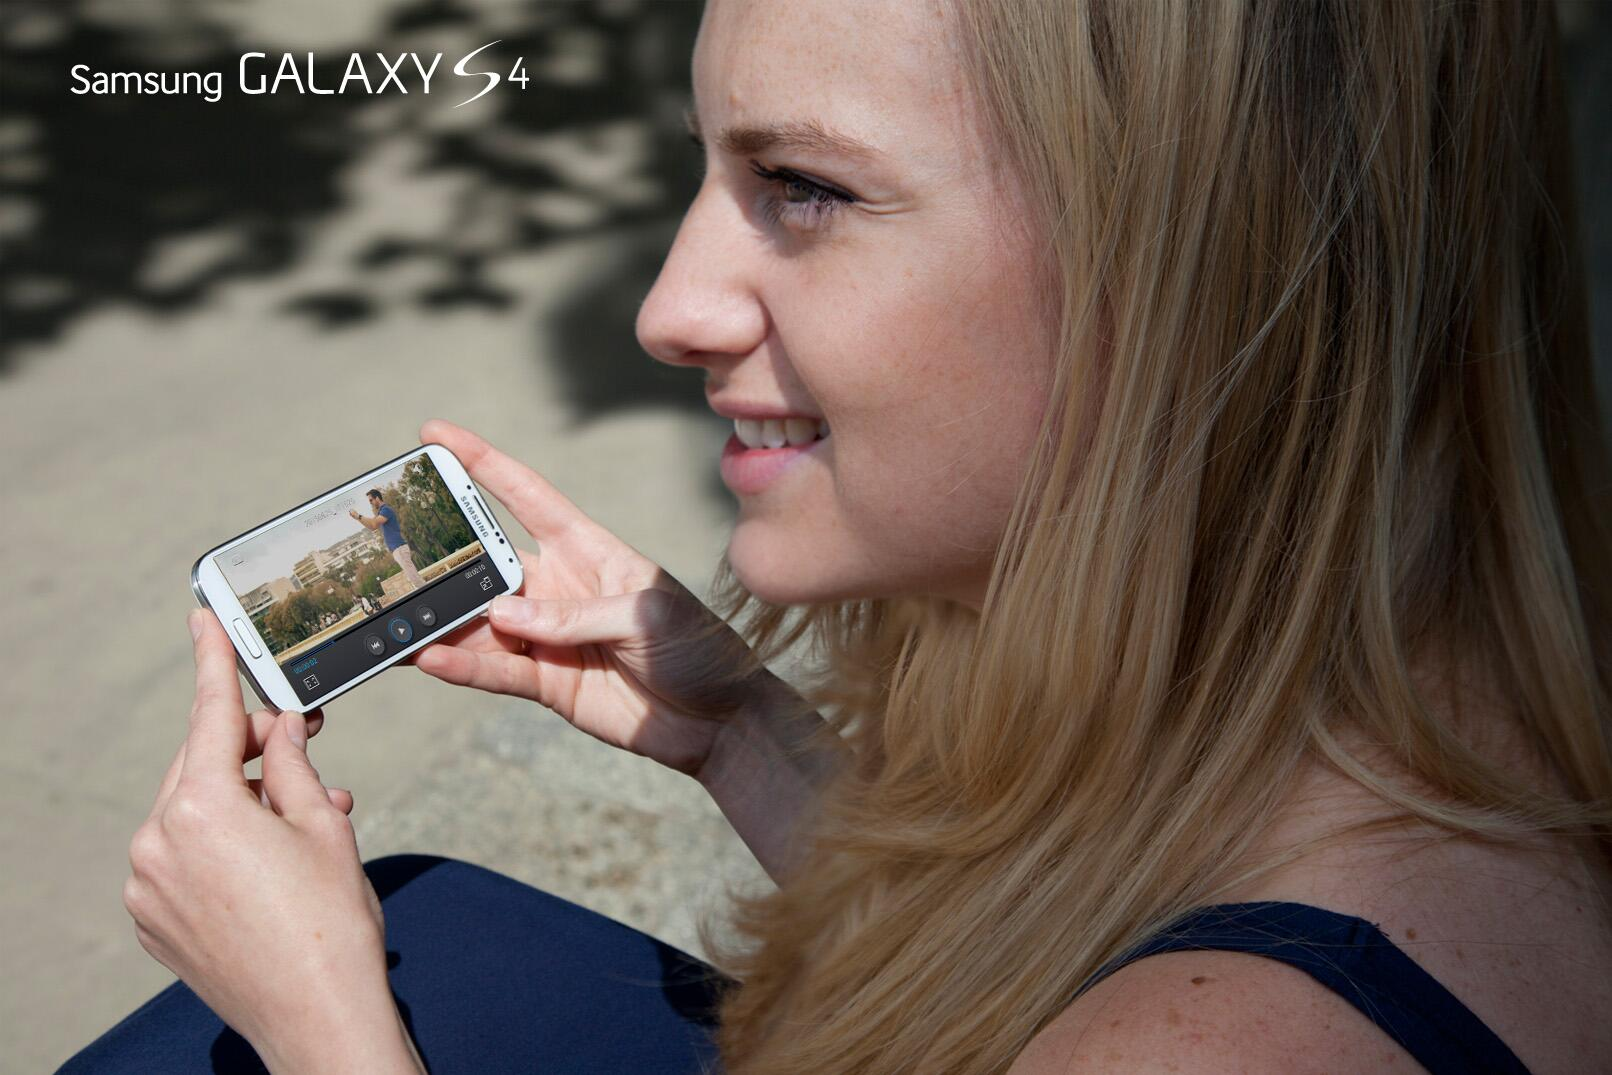 Twitter / SamsungMobile: Smart Pause on #GALAXYS4 pauses ...